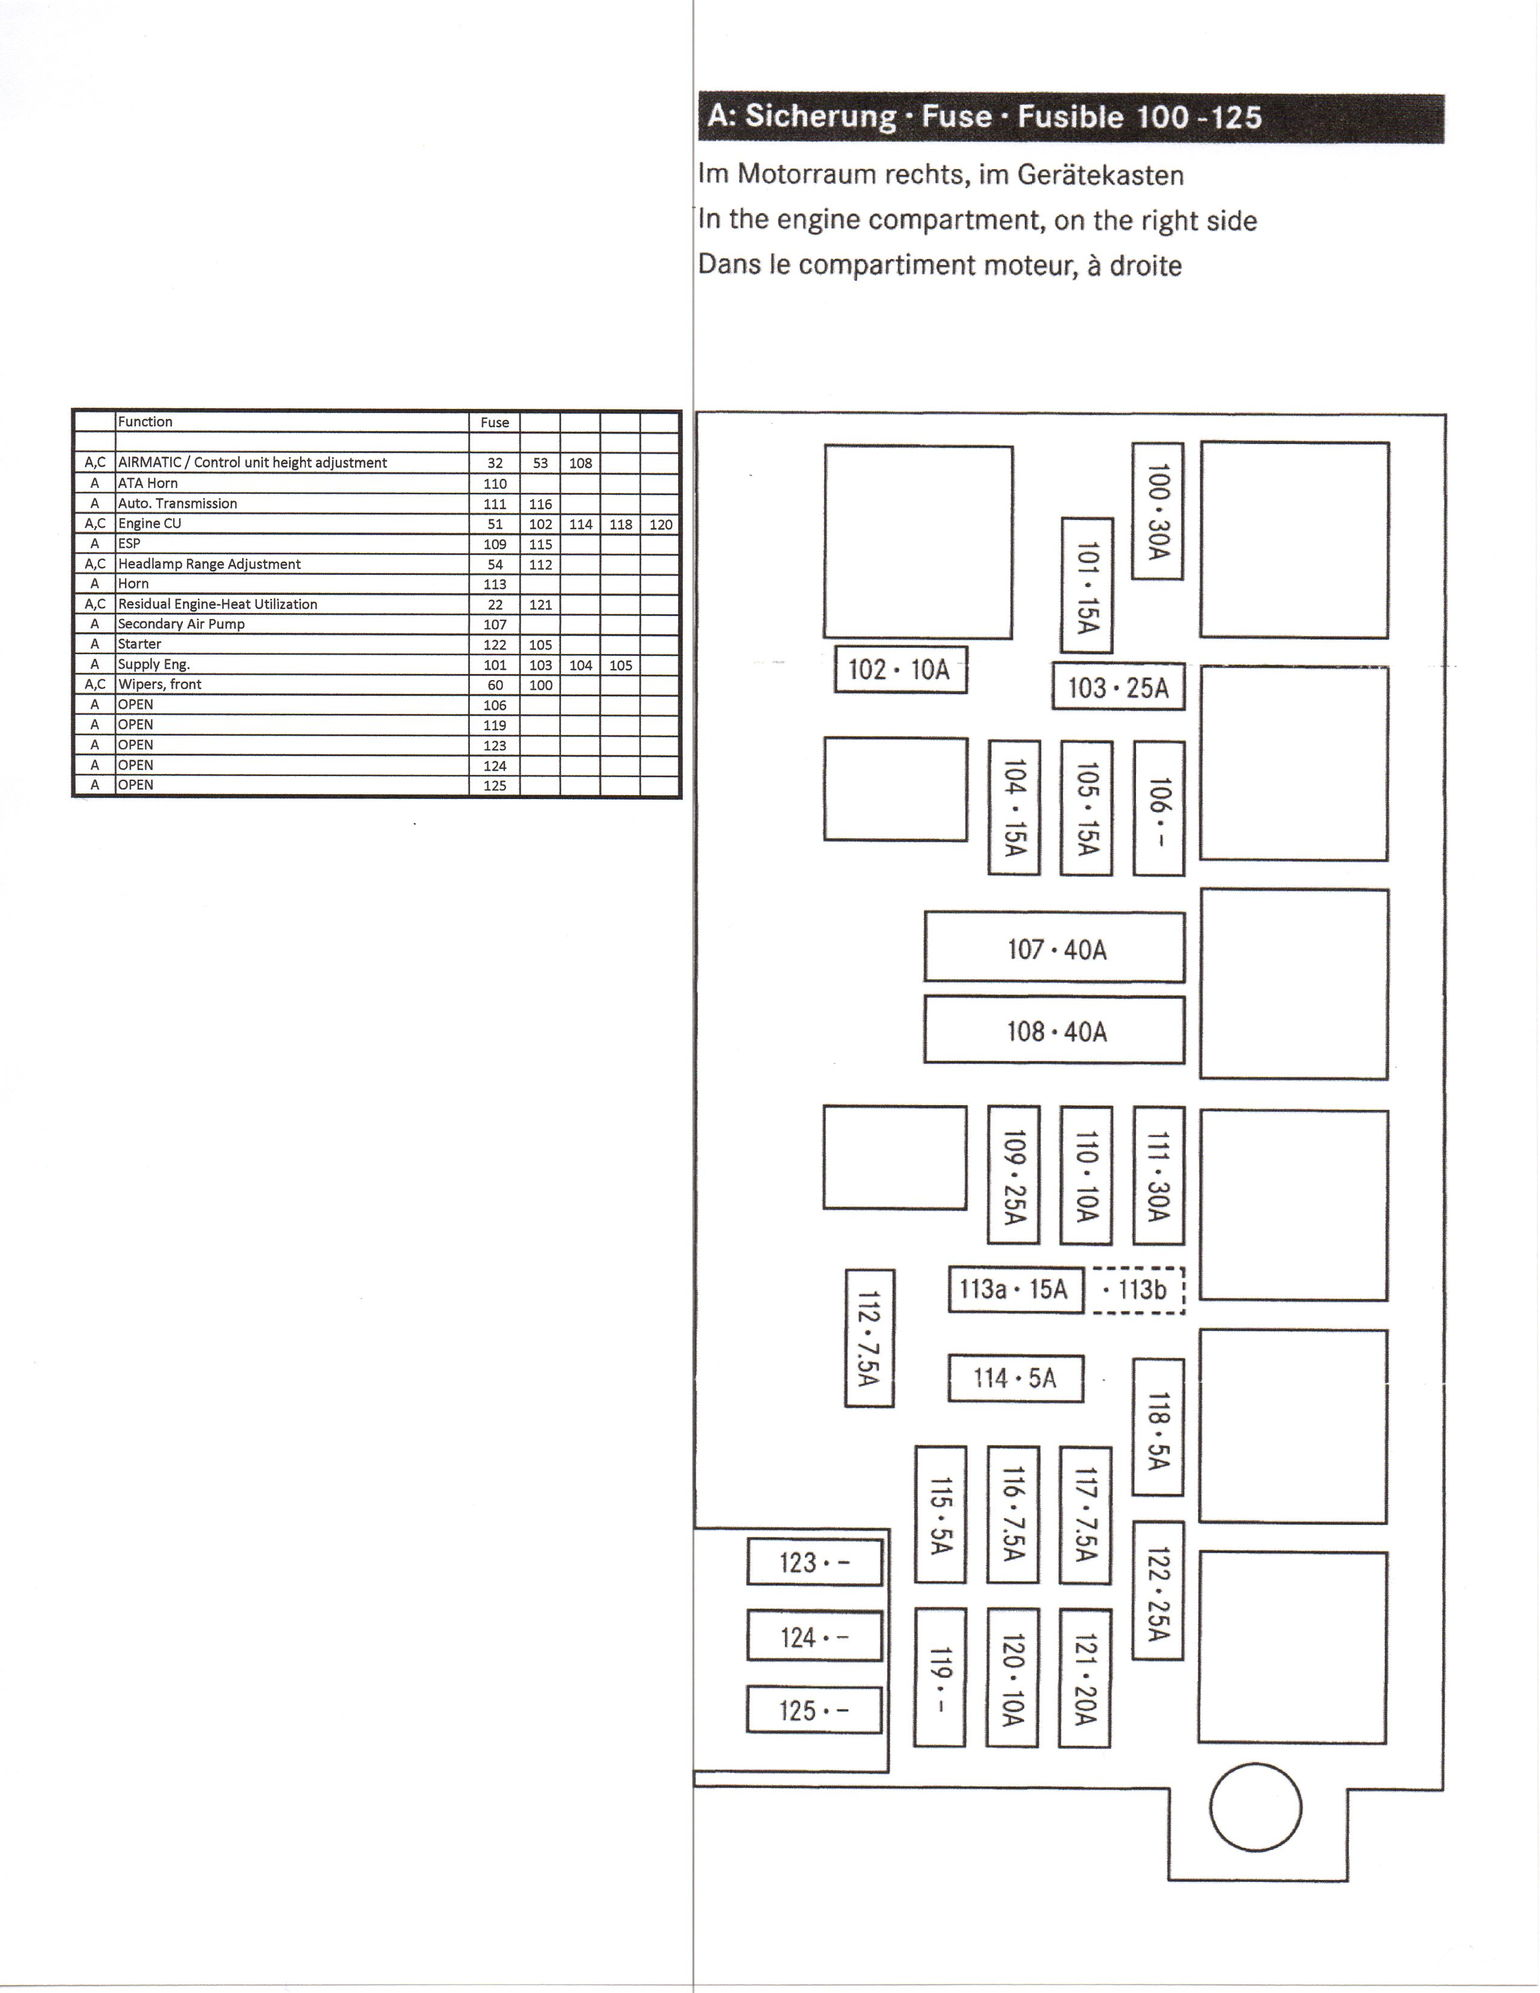 04 f450 fpdm wiring diagram